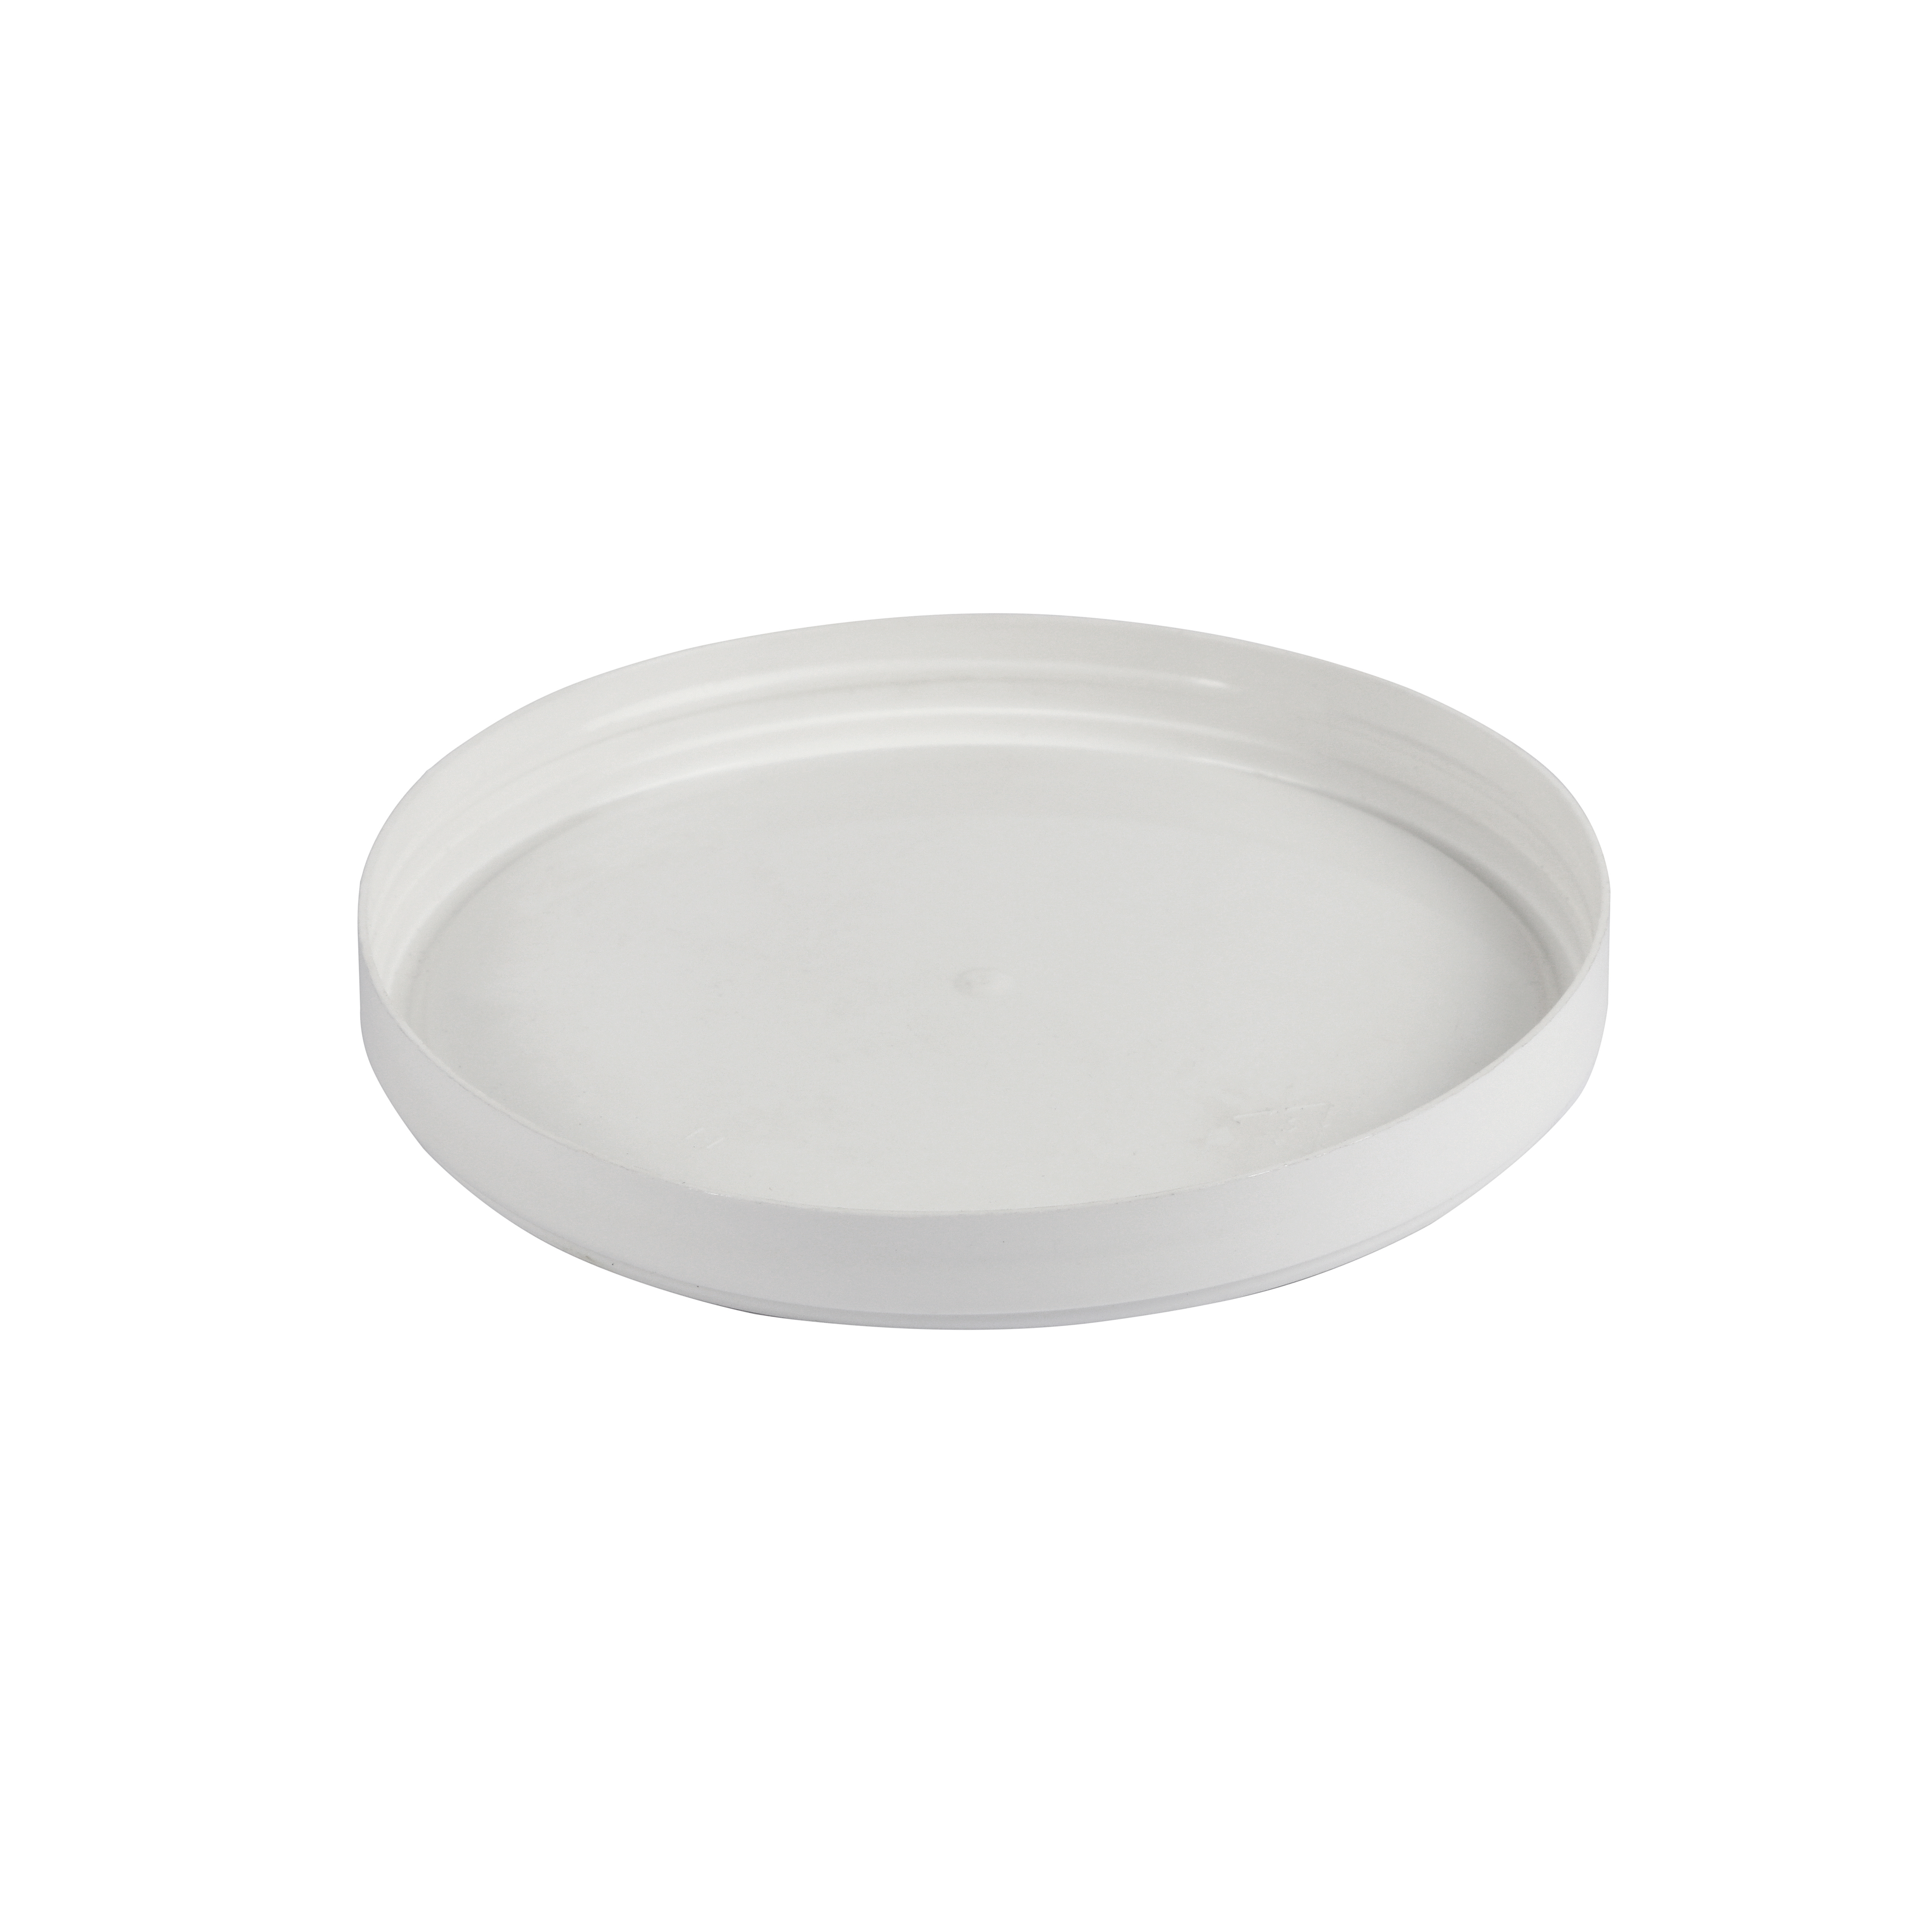 PP lid 110 mm for cardboard cups and buckets. Polymeric  lid for  popcorn buckets